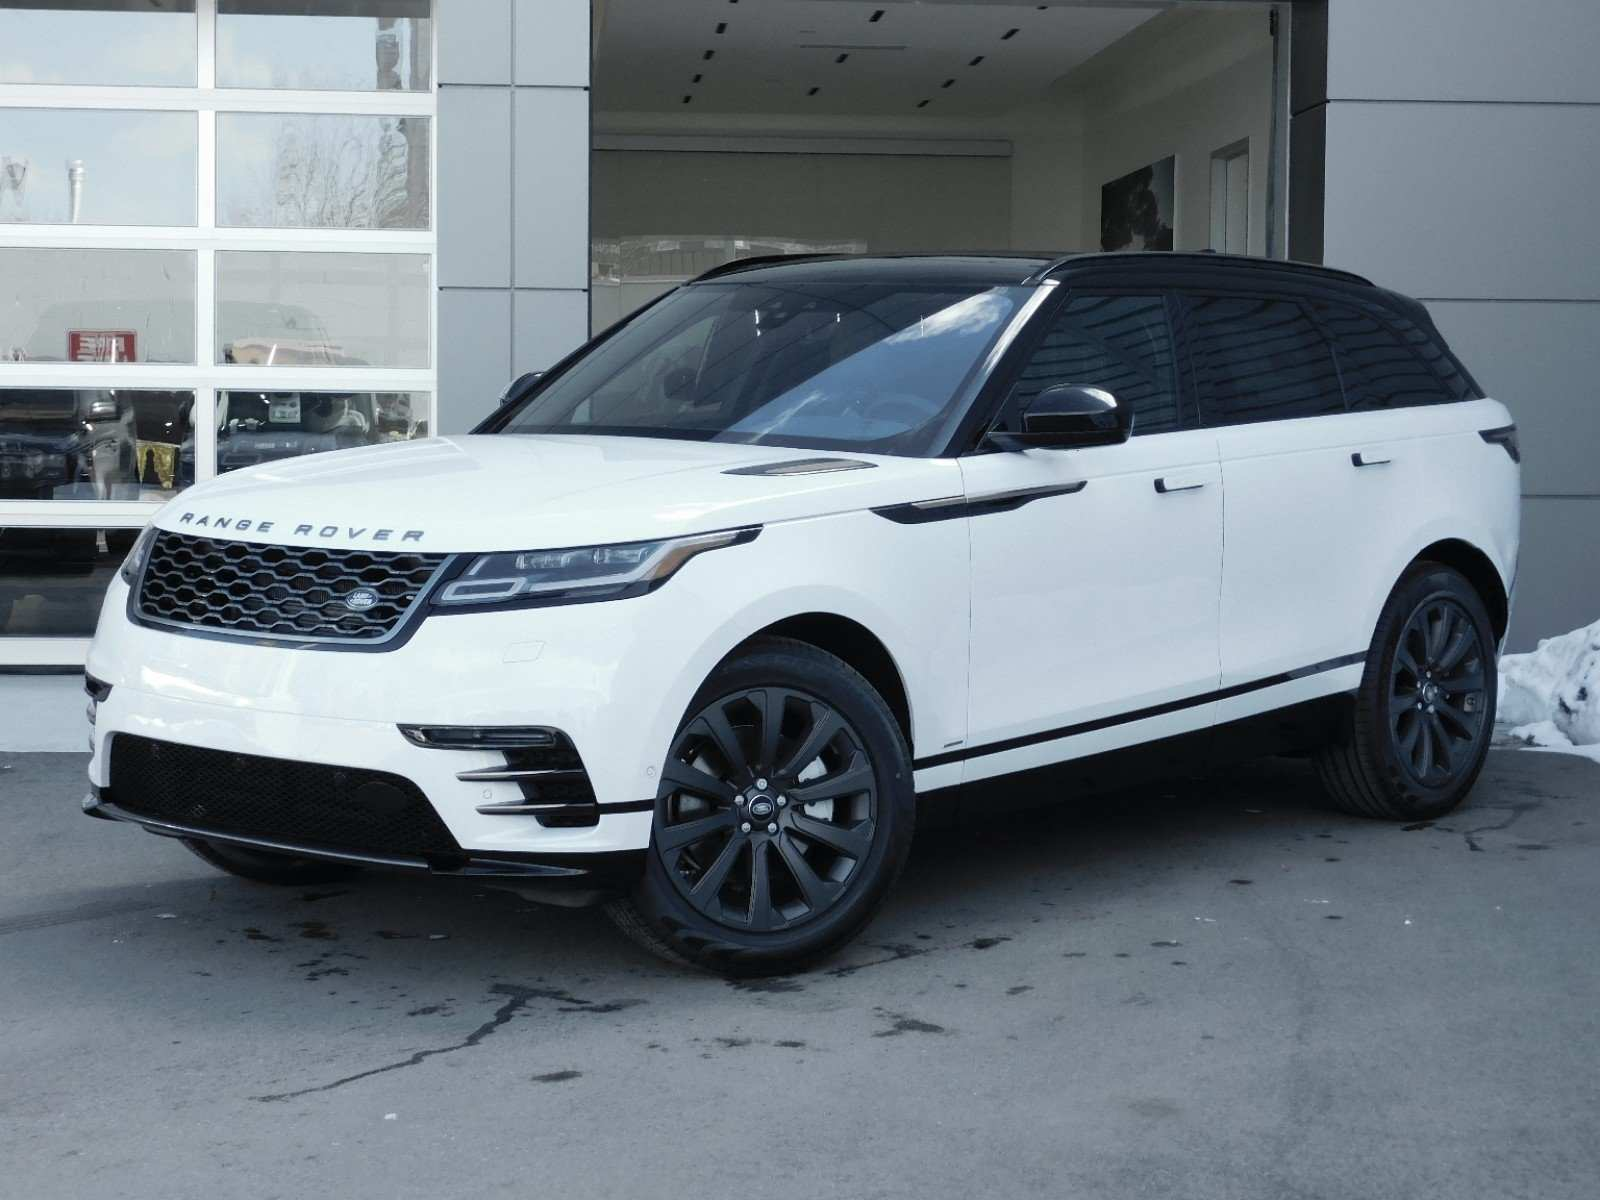 85 Best Review New Land Rover 2019 Release Date for New Land Rover 2019